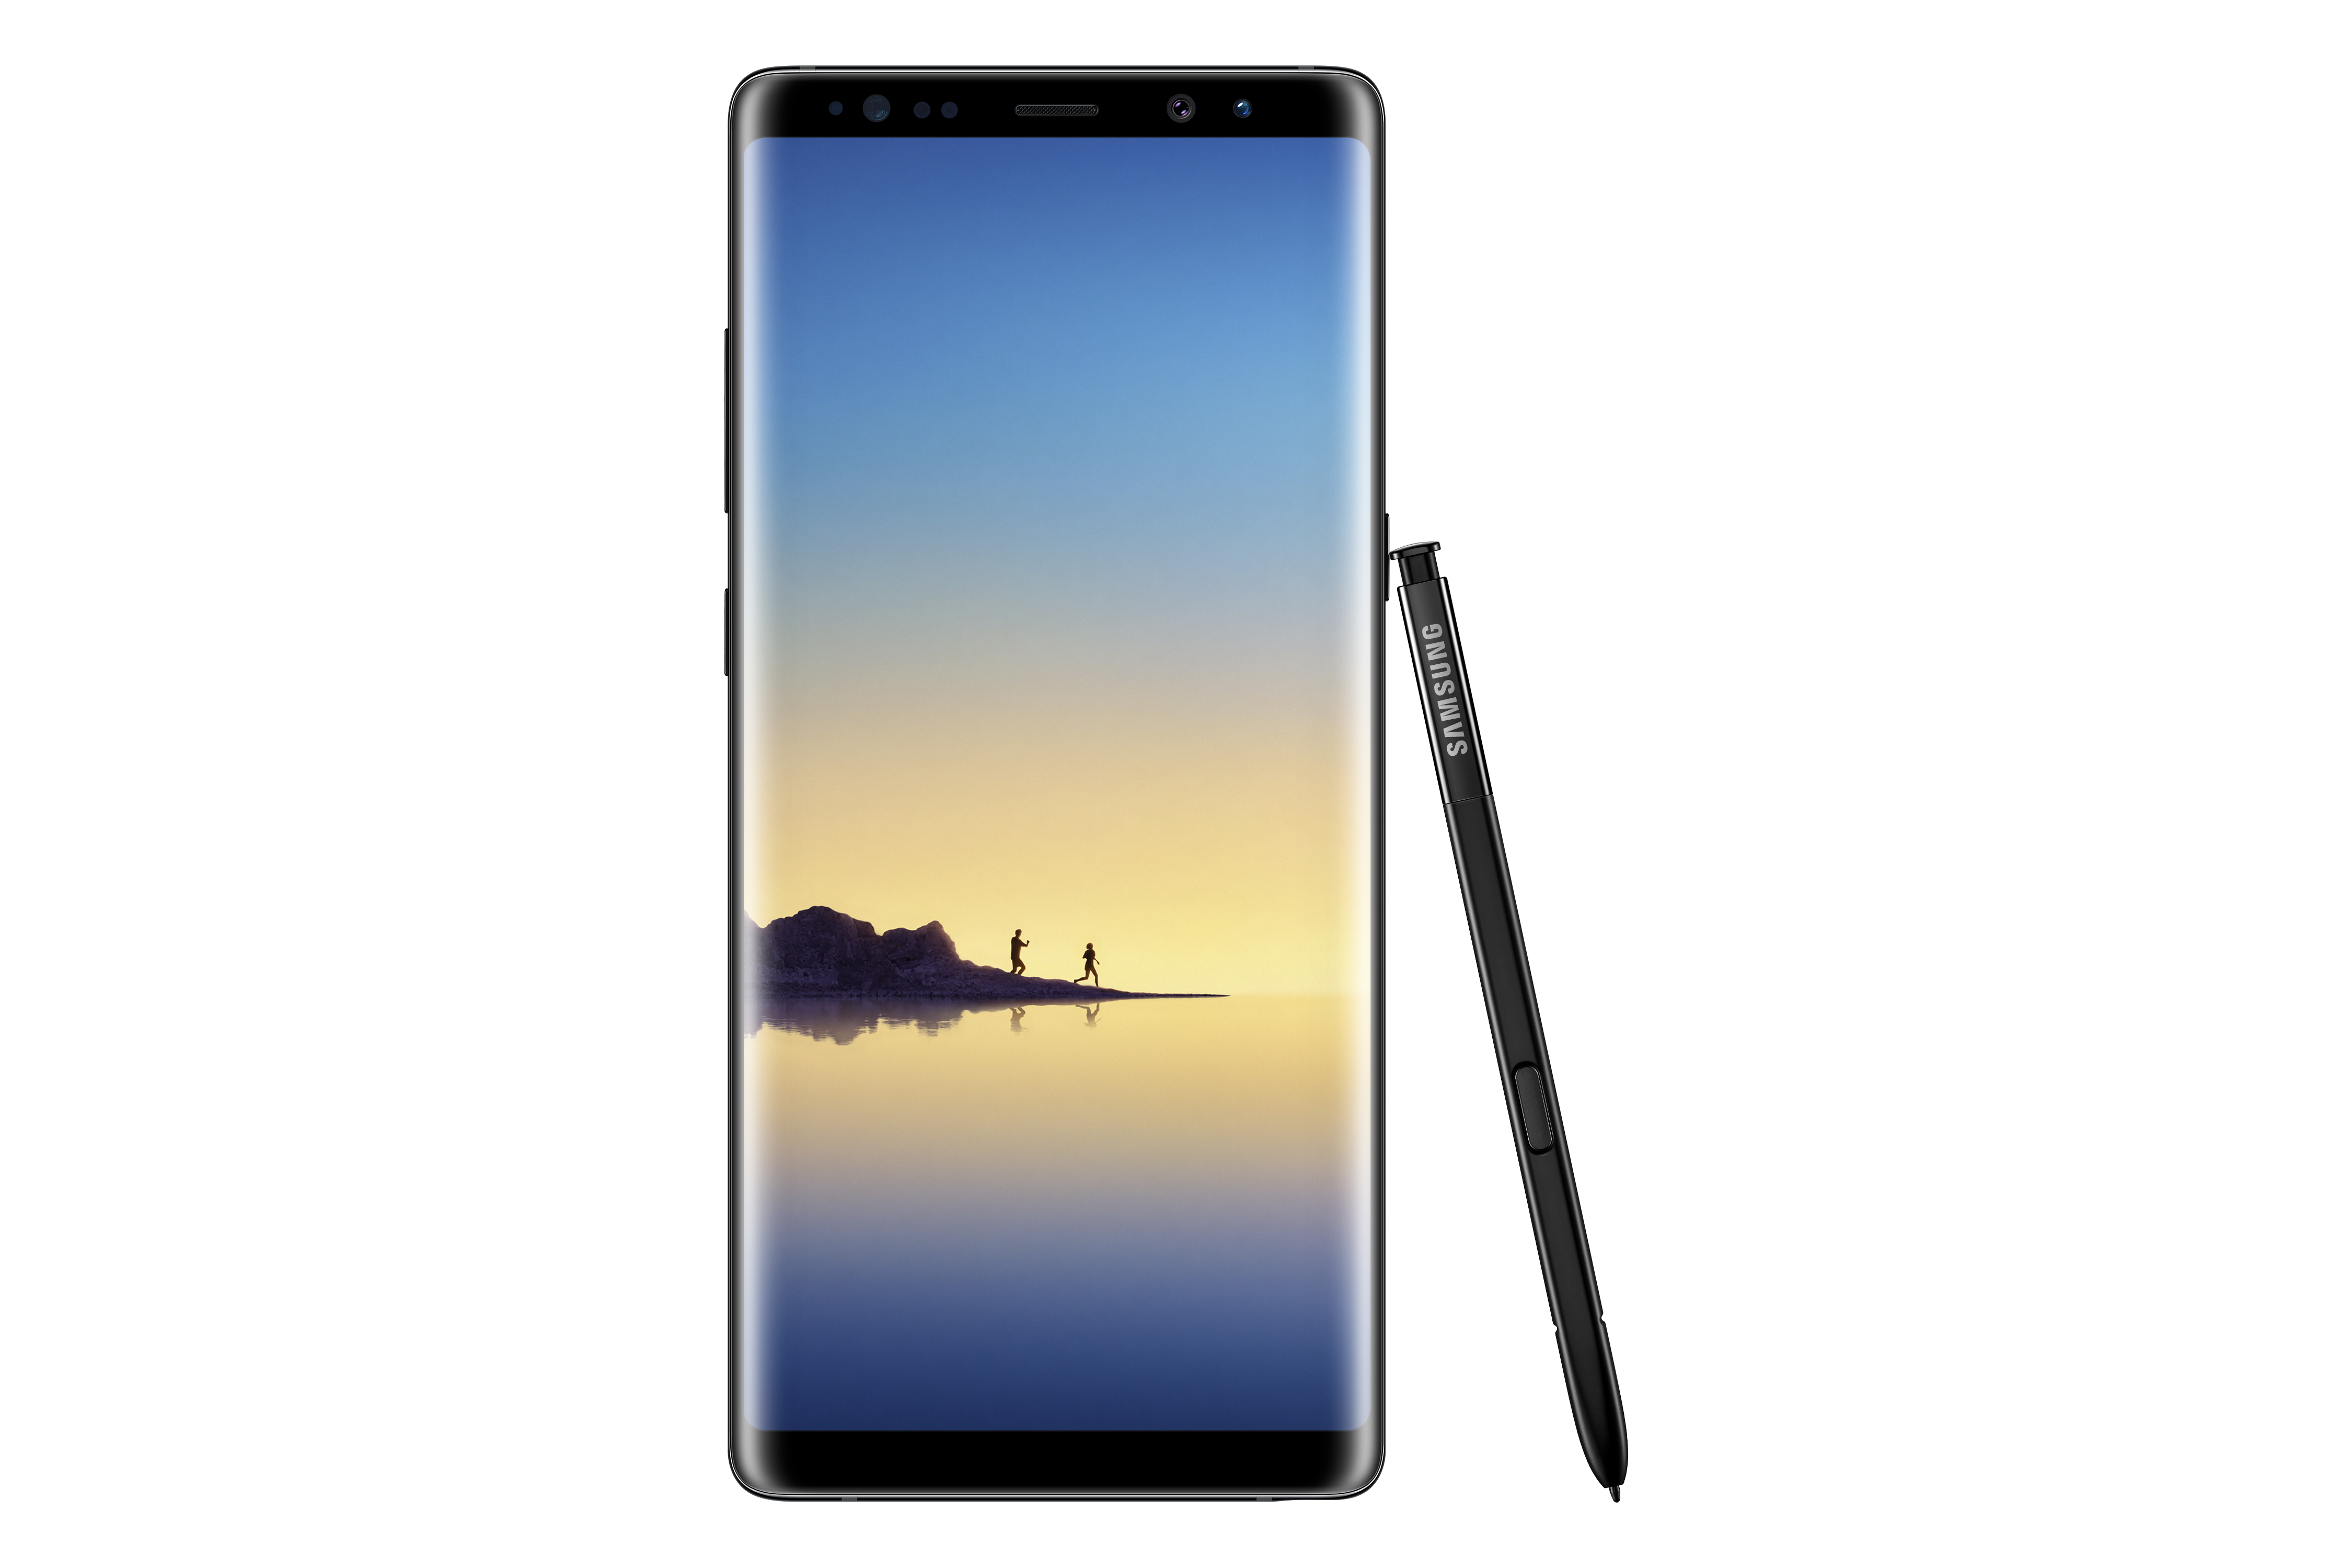 Galaxy Note8 Enterprise Edition